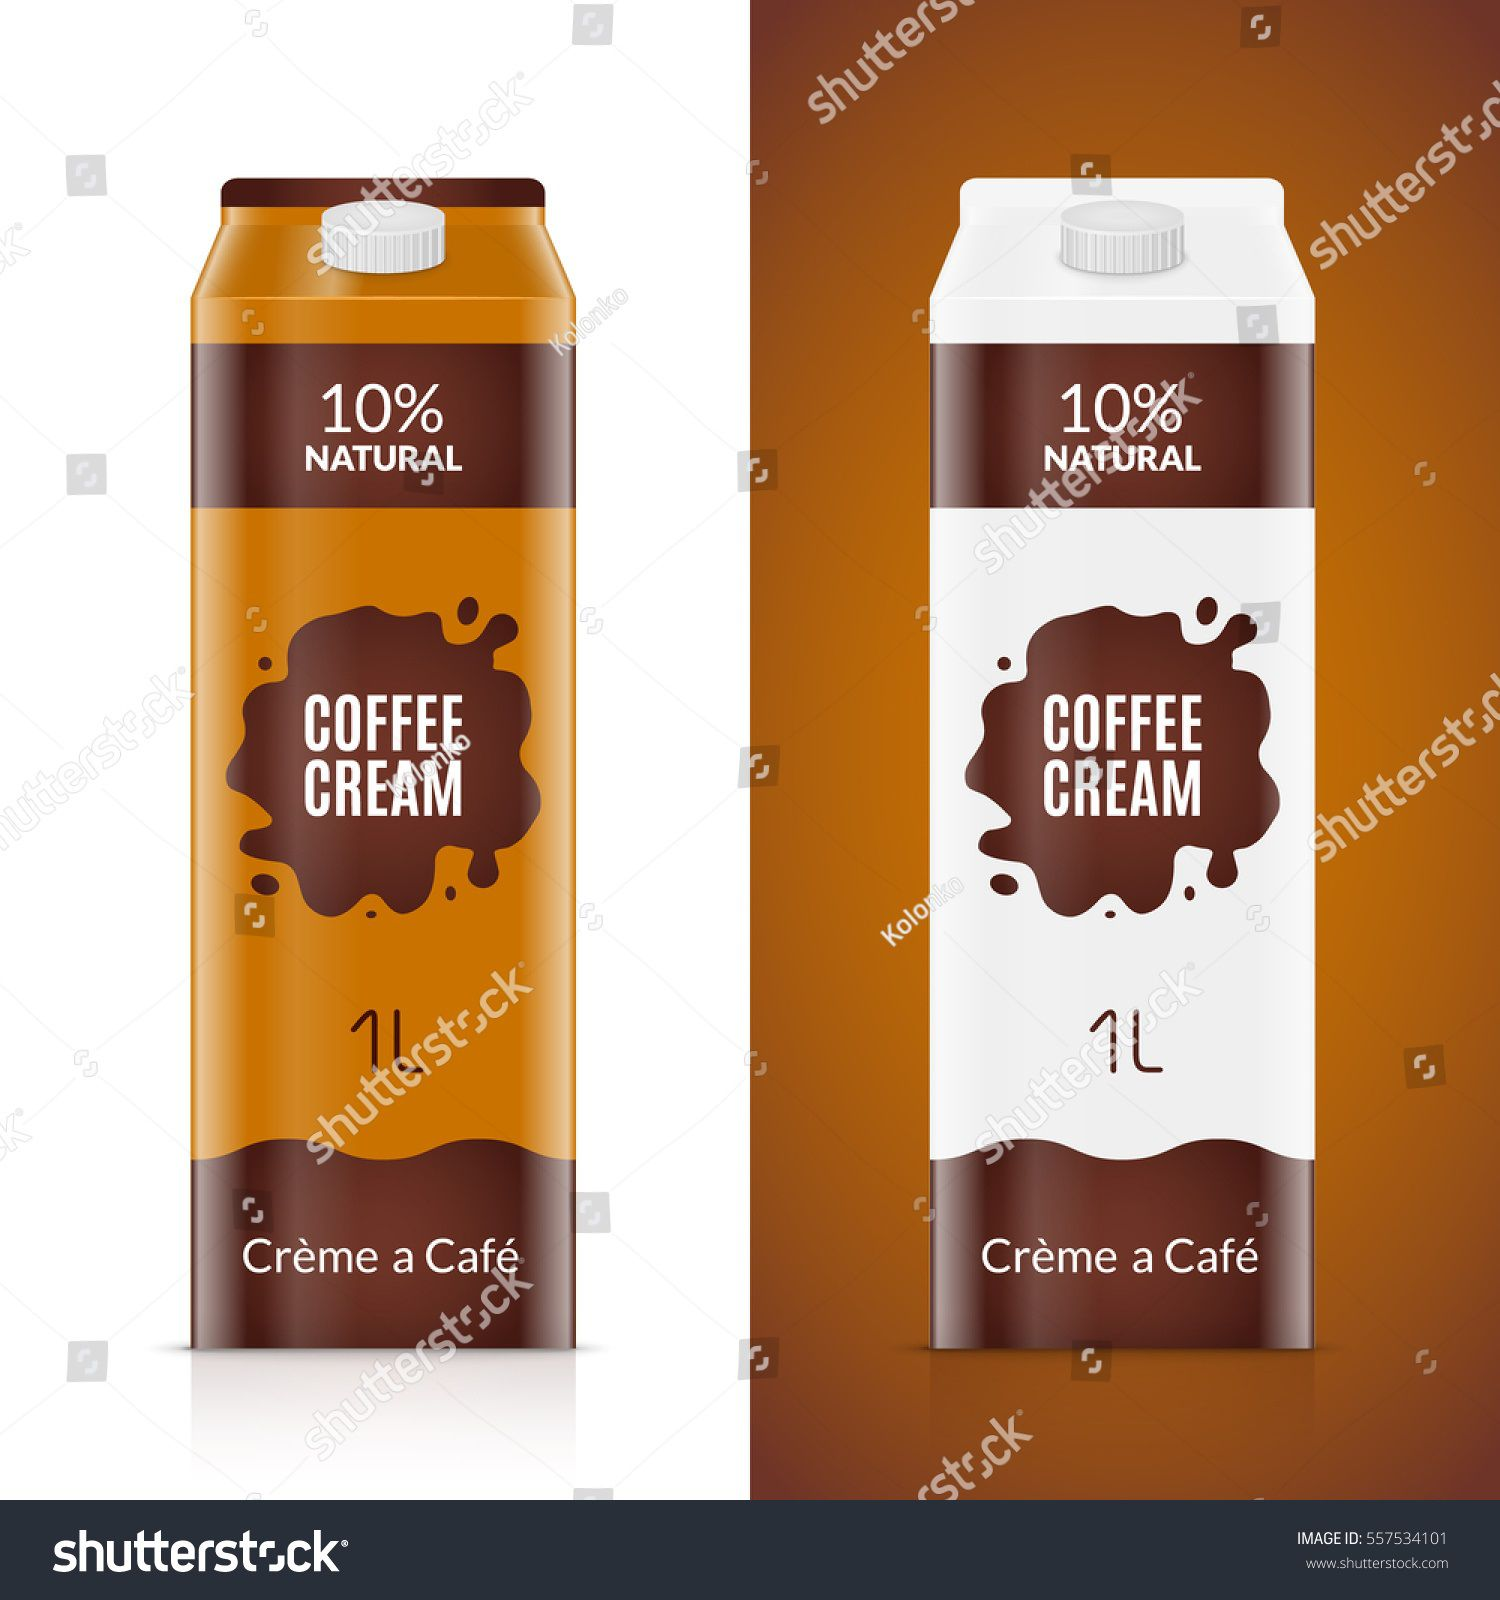 007 Stirring Product Packaging Design Template  Templates Free Download SampleFull